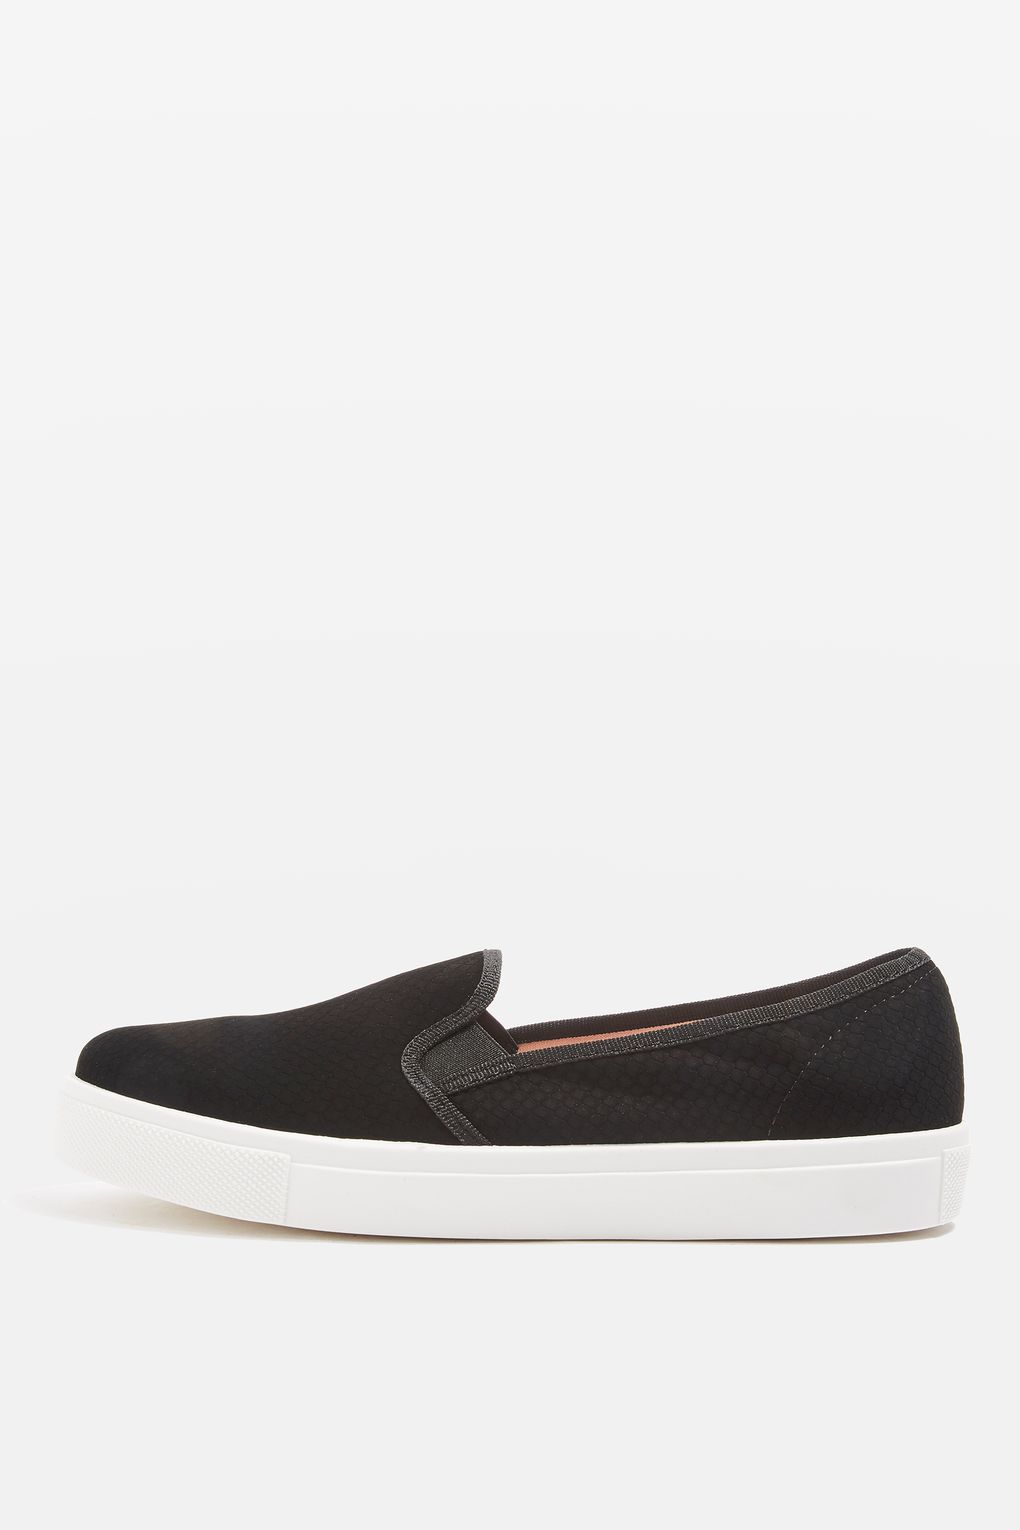 TEMPO Slip On Trainers - ShopperBoard